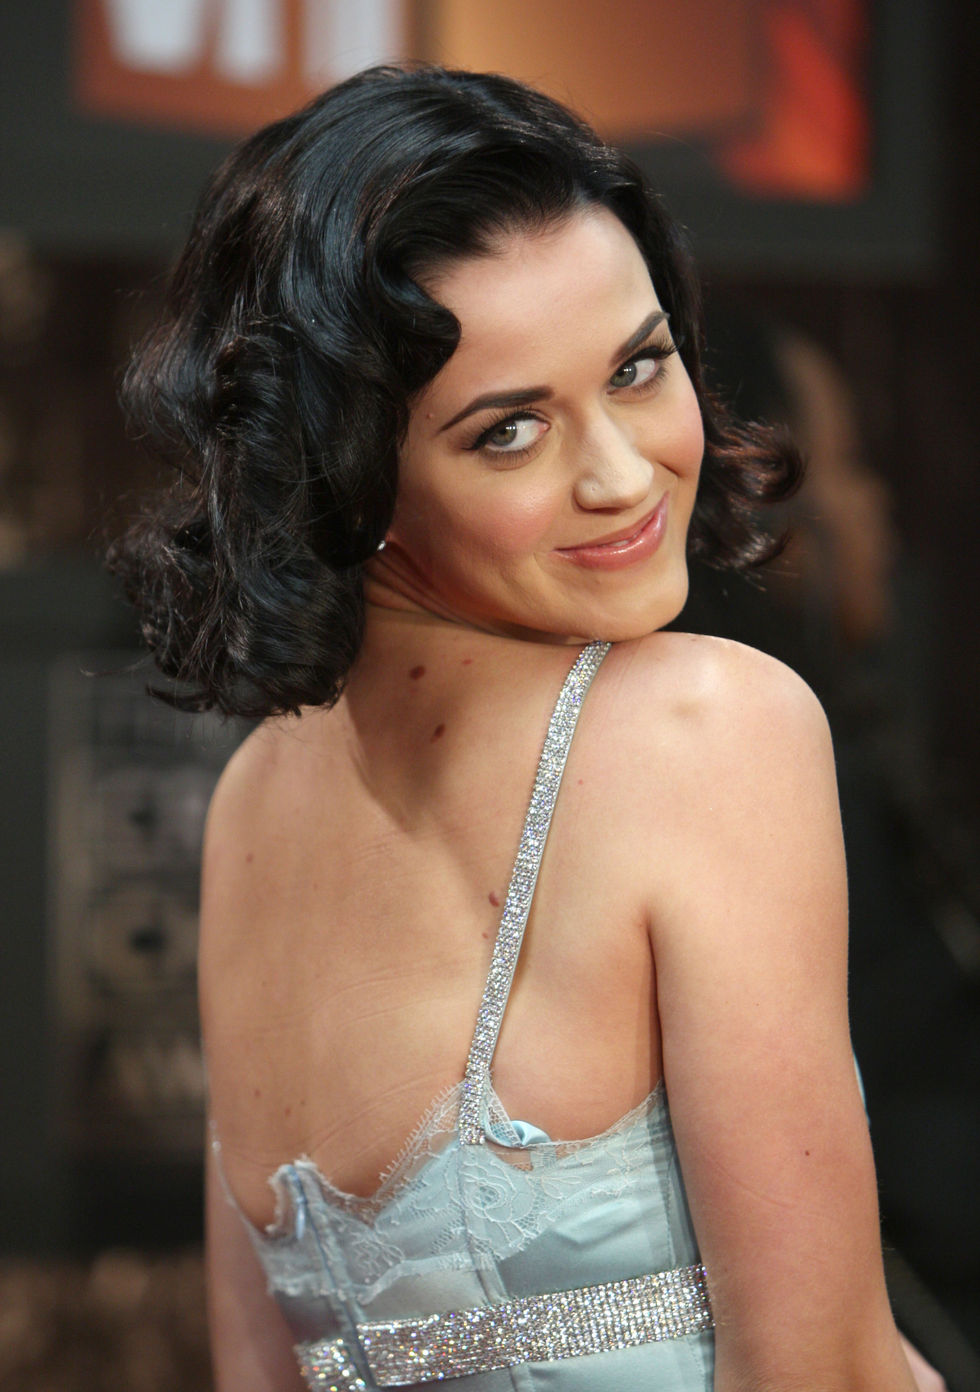 katy-perry-14th-annual-critics-choice-awards-in-santa-monica-01